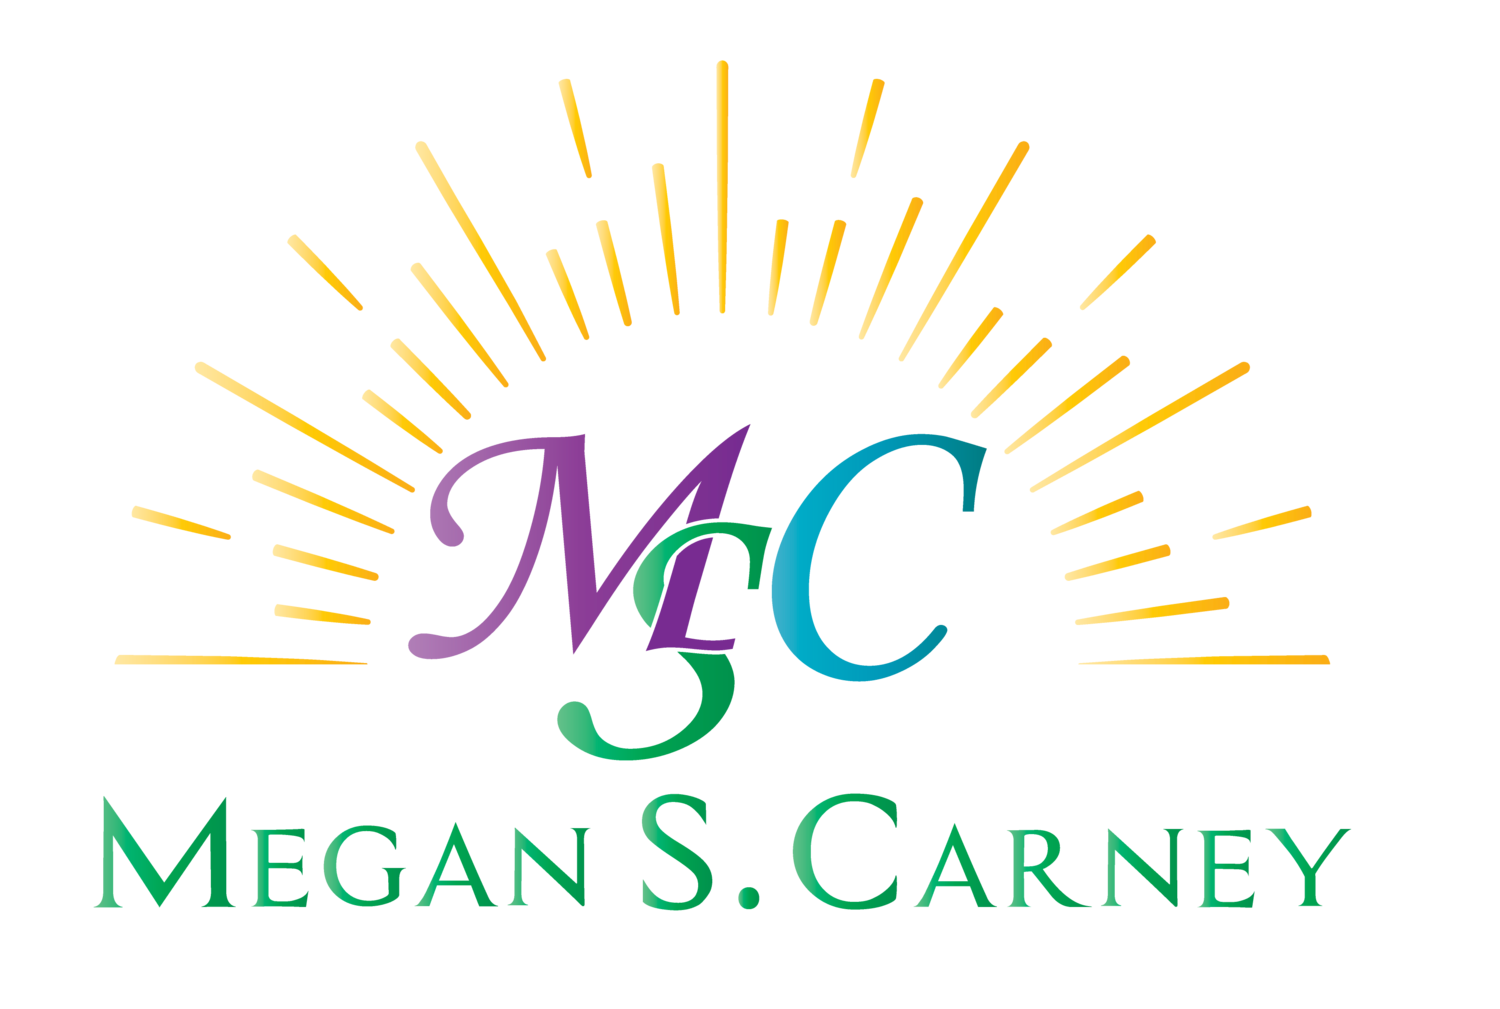 Megan S. Carney PhD, Licensed Psychologist